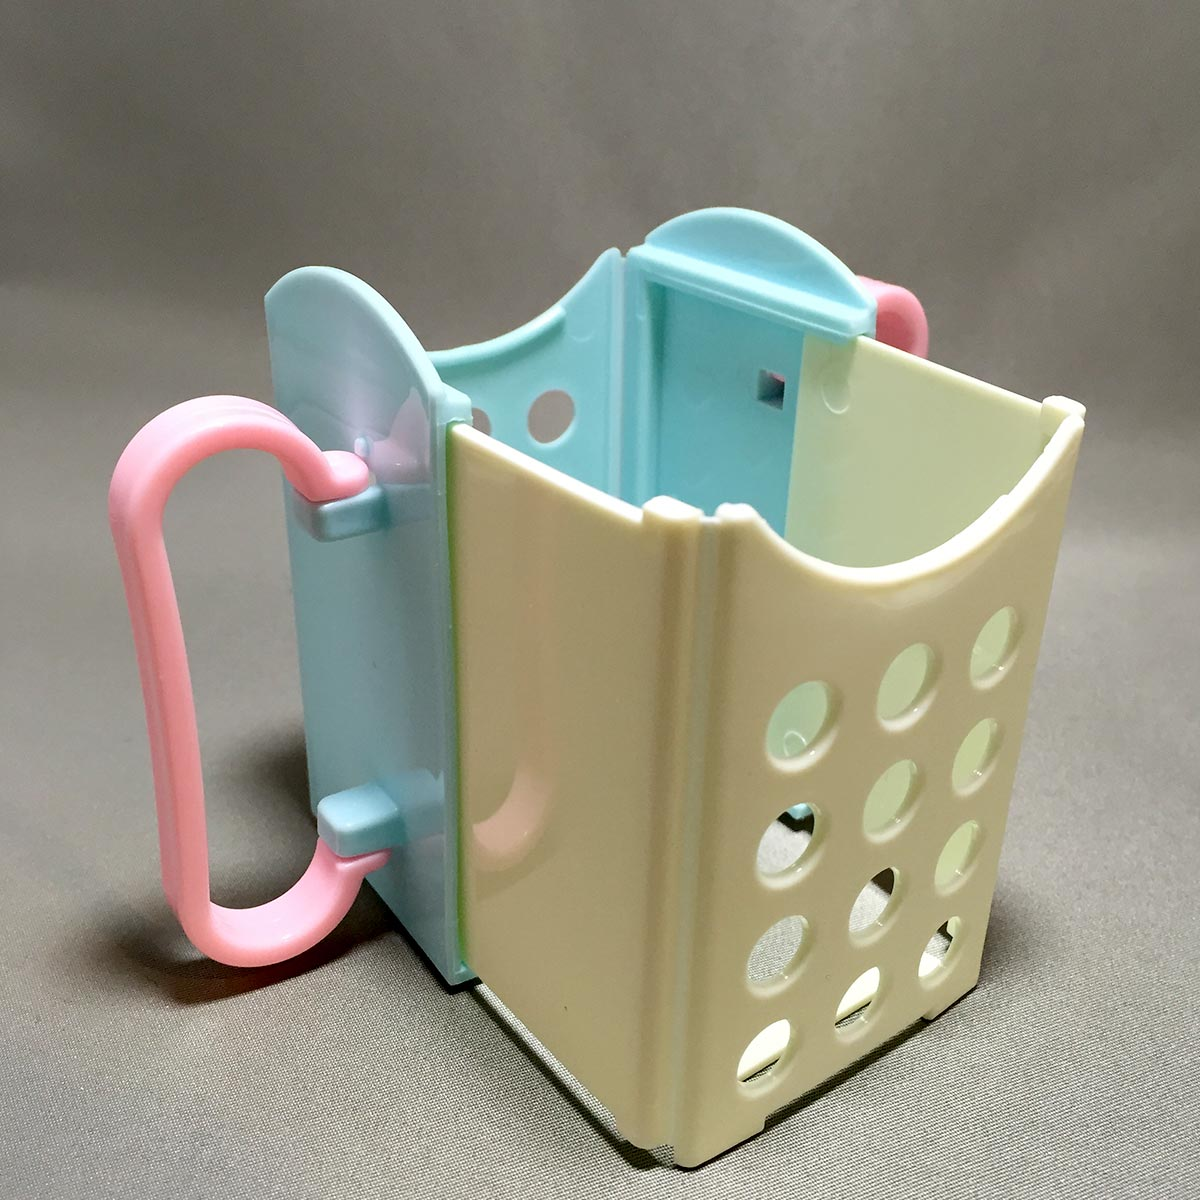 Folding Drink Box Holder - Opened and expanded